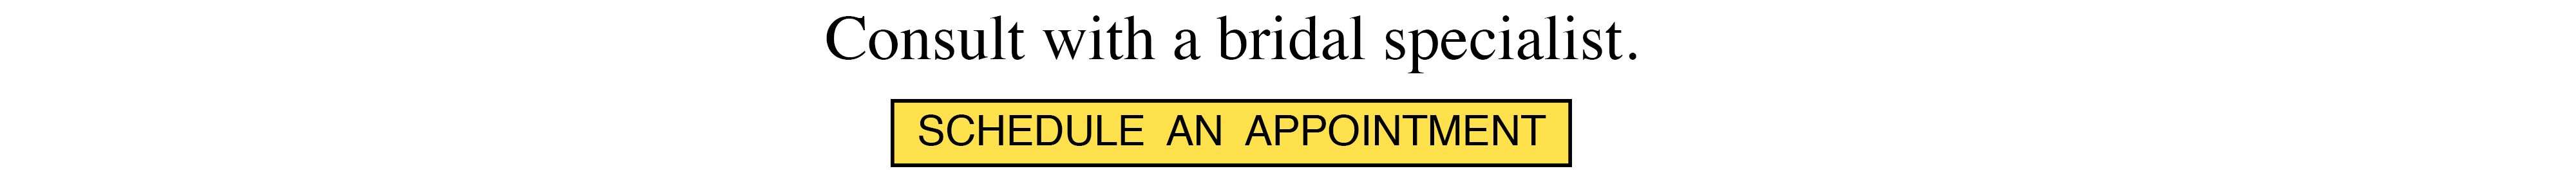 Schedule an appointment with a Manfredi Bridal Specialist.